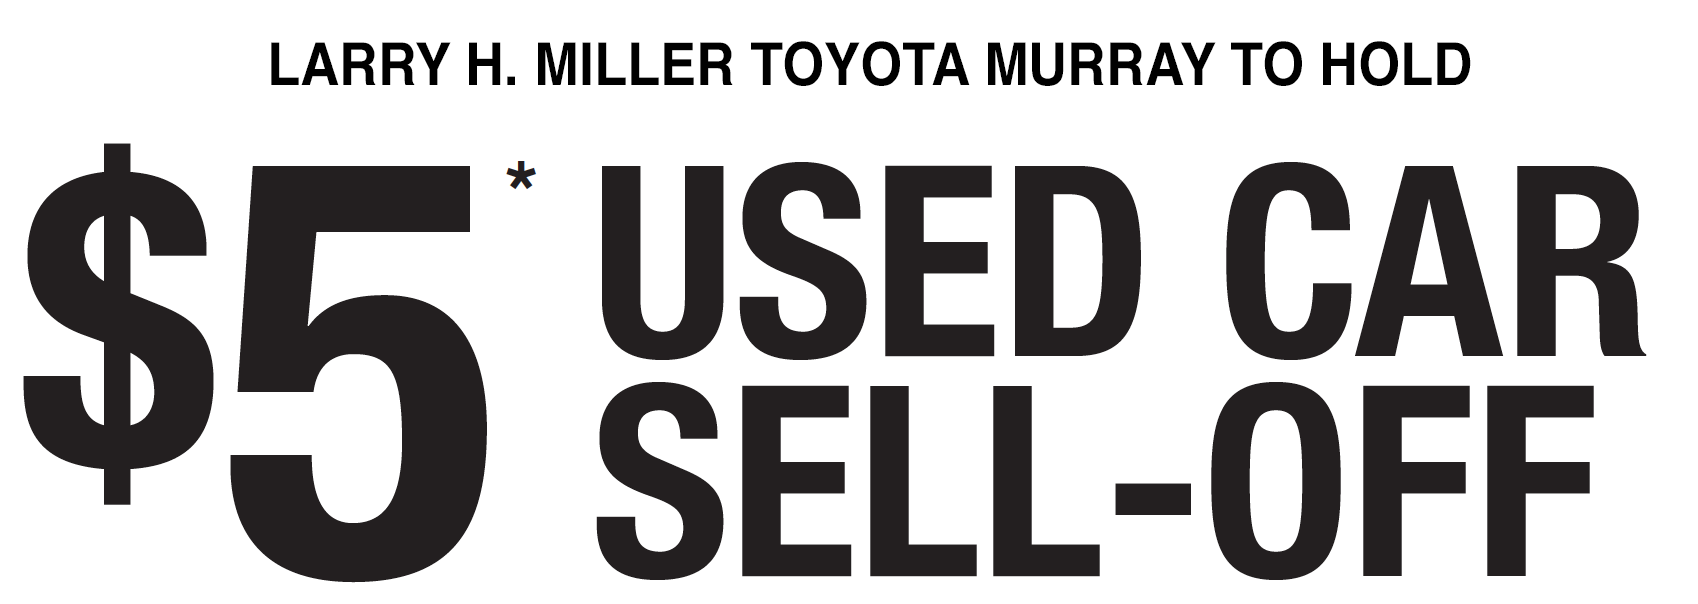 shop at lhm toyota murray 39 s upcoming 5 used car sell off. Black Bedroom Furniture Sets. Home Design Ideas